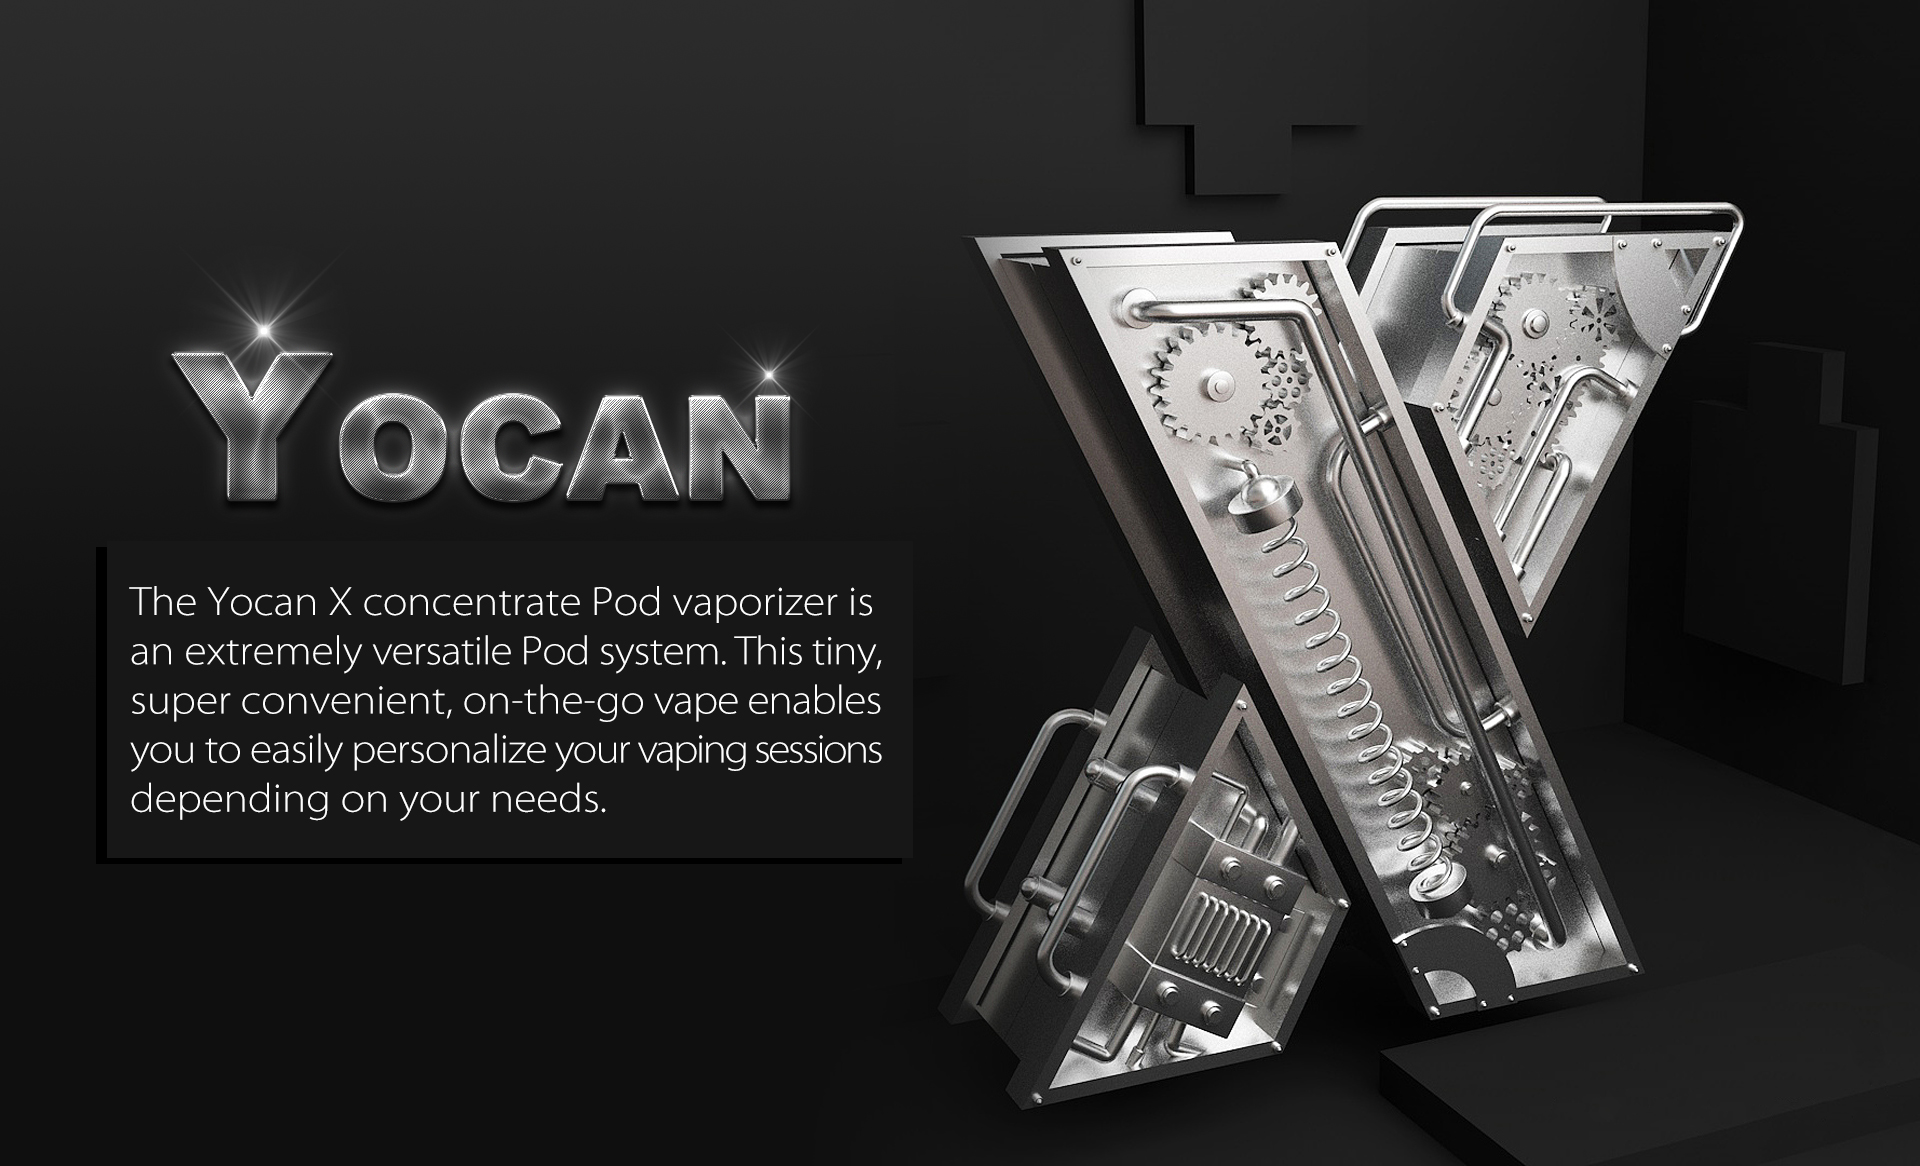 Yocan X Pod System enables you easily personalize your vaping sessions depending on your needs.